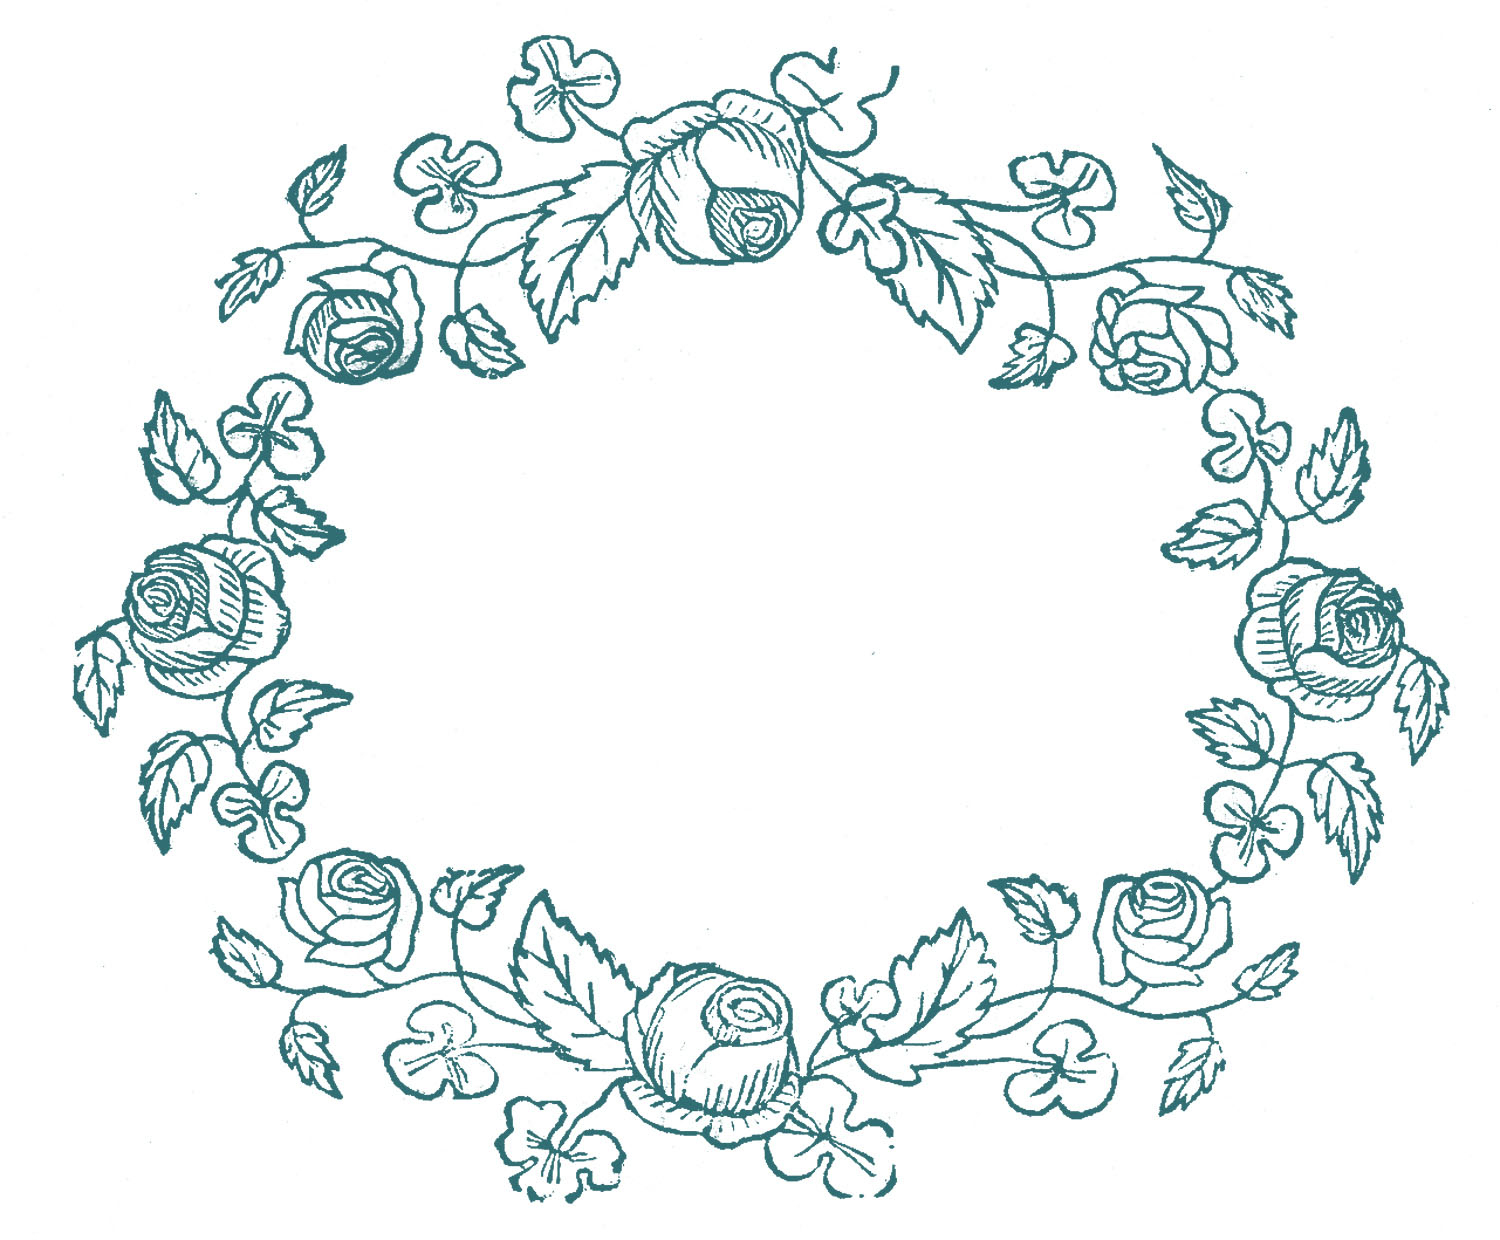 Royalty Free Images - Rose Wreaths - Embroidery Pattern - The - Free Printable Embroidery Patterns